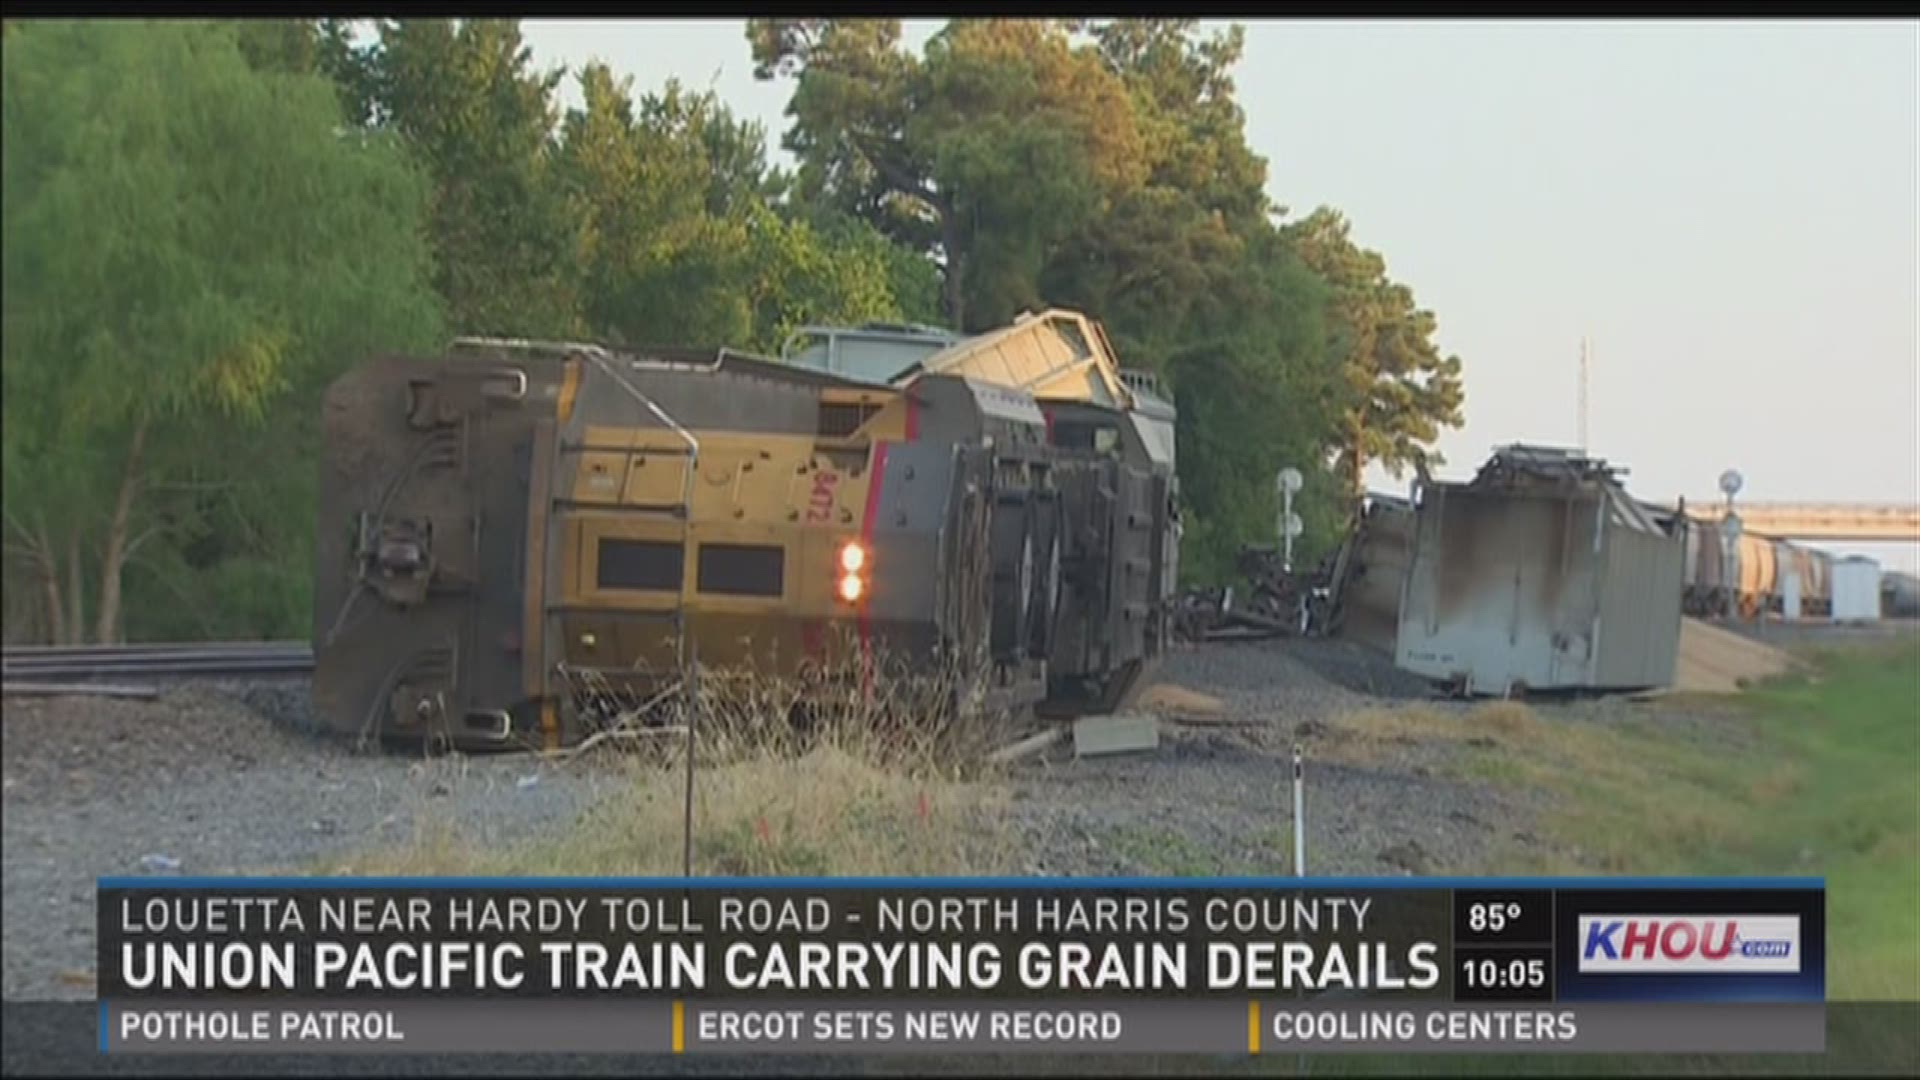 Union Pacific train carrying grain derails